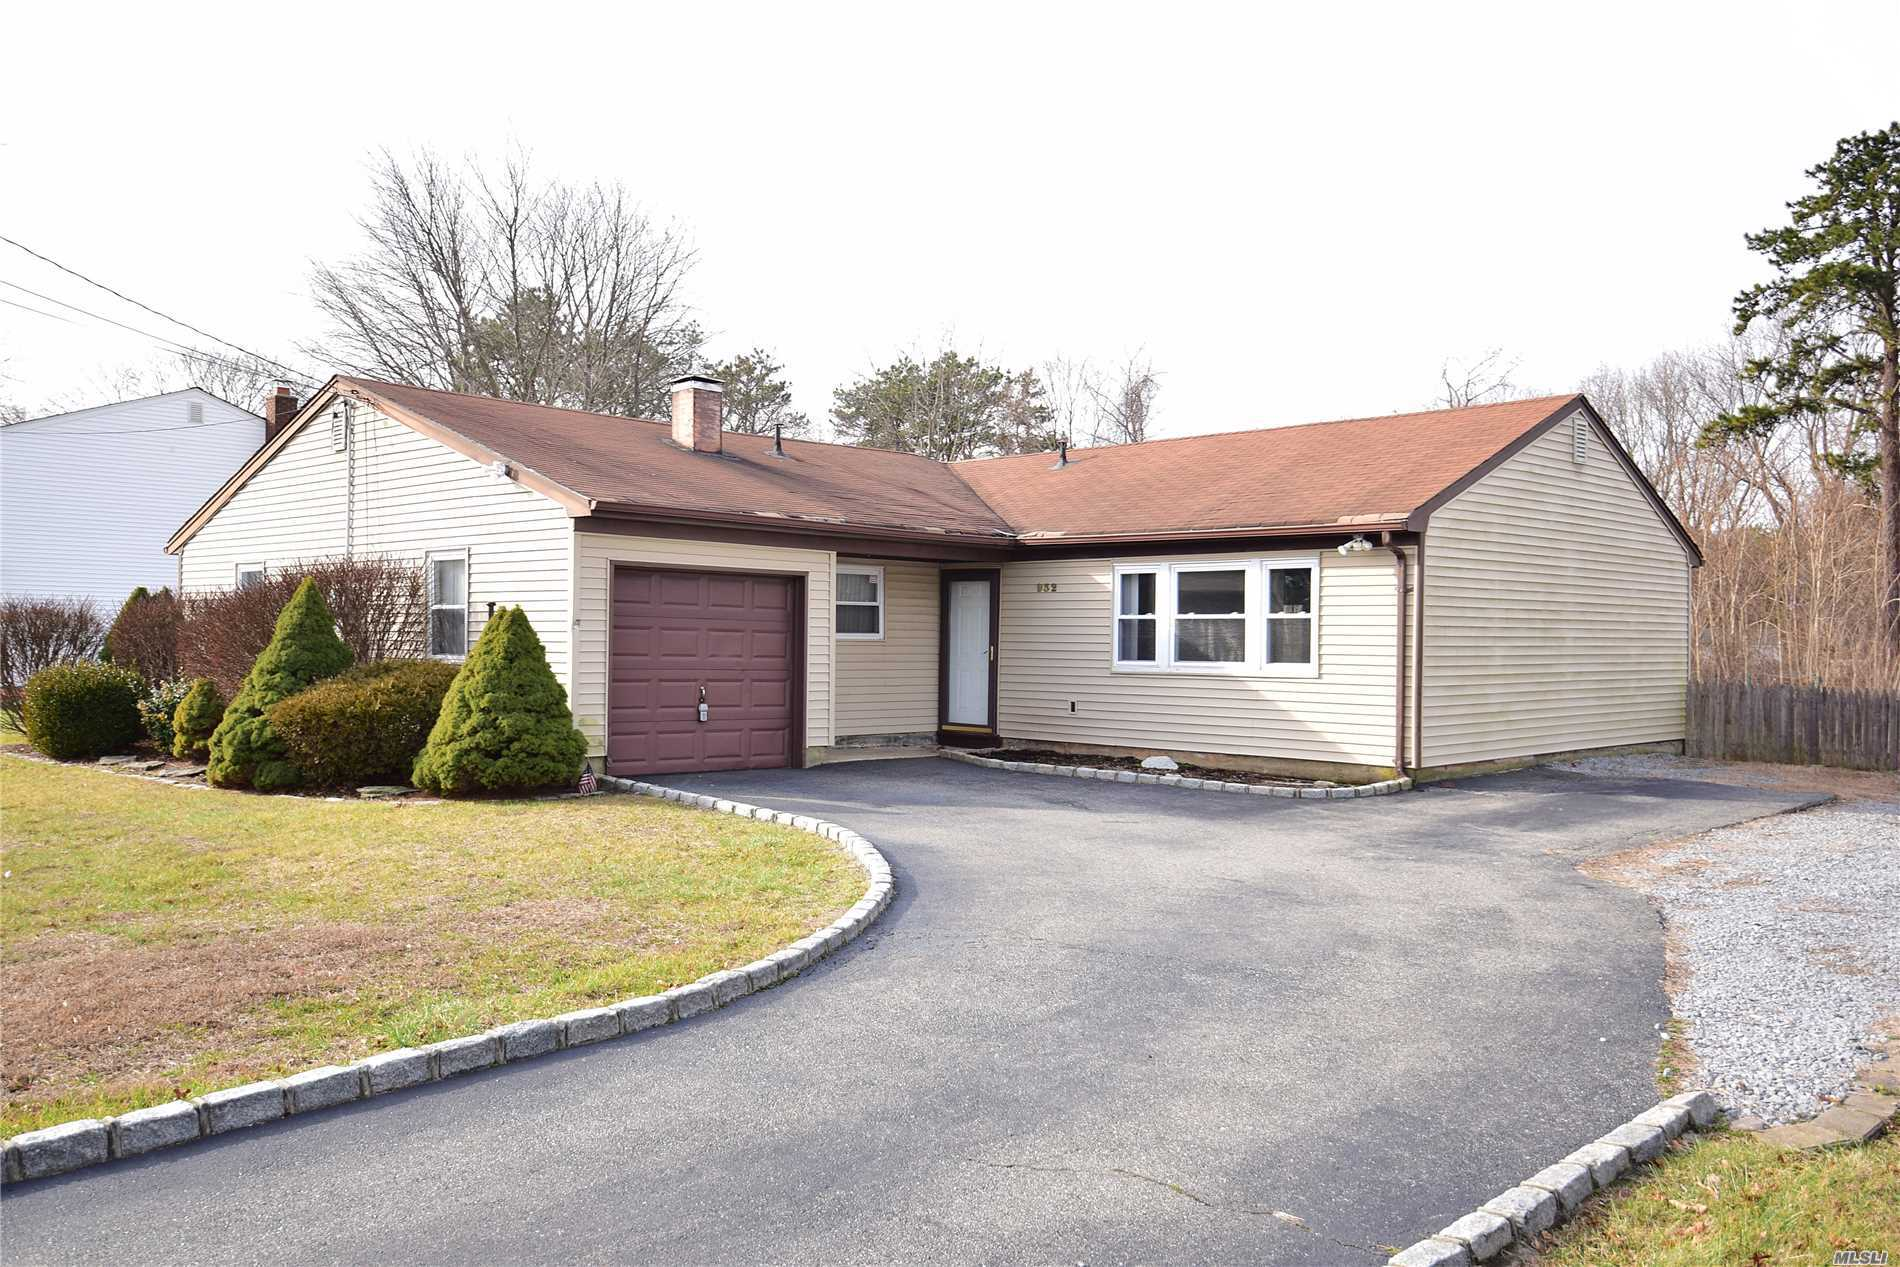 3 Bedroom, 1.5 Bath Ranch With Large Rooms. Updated Vinyl Siding & Windows. Large Flat Clear Property.